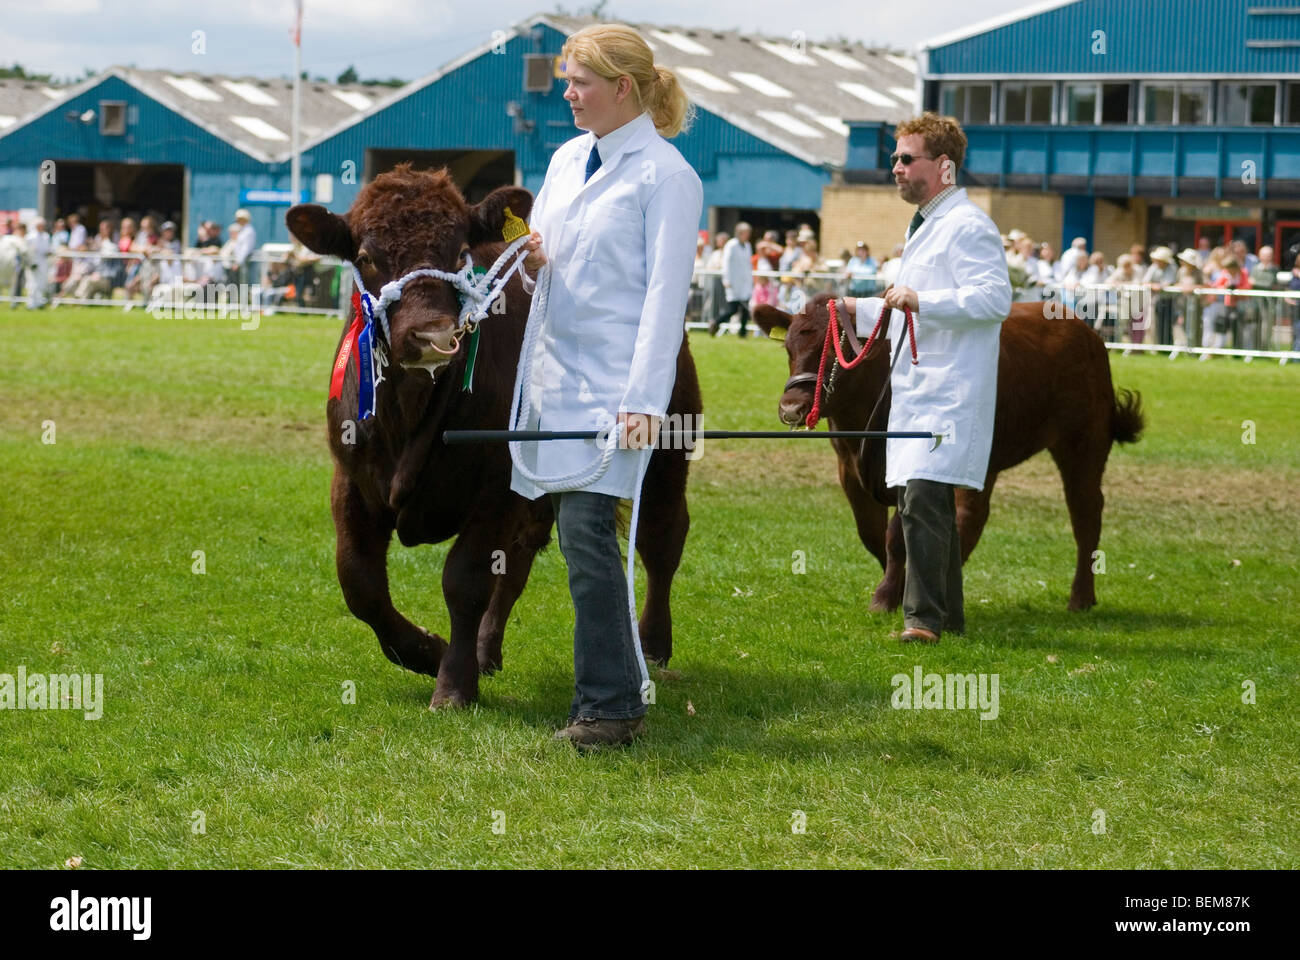 Small Dexter Cattle With Handlers Man And Woman Wearing White